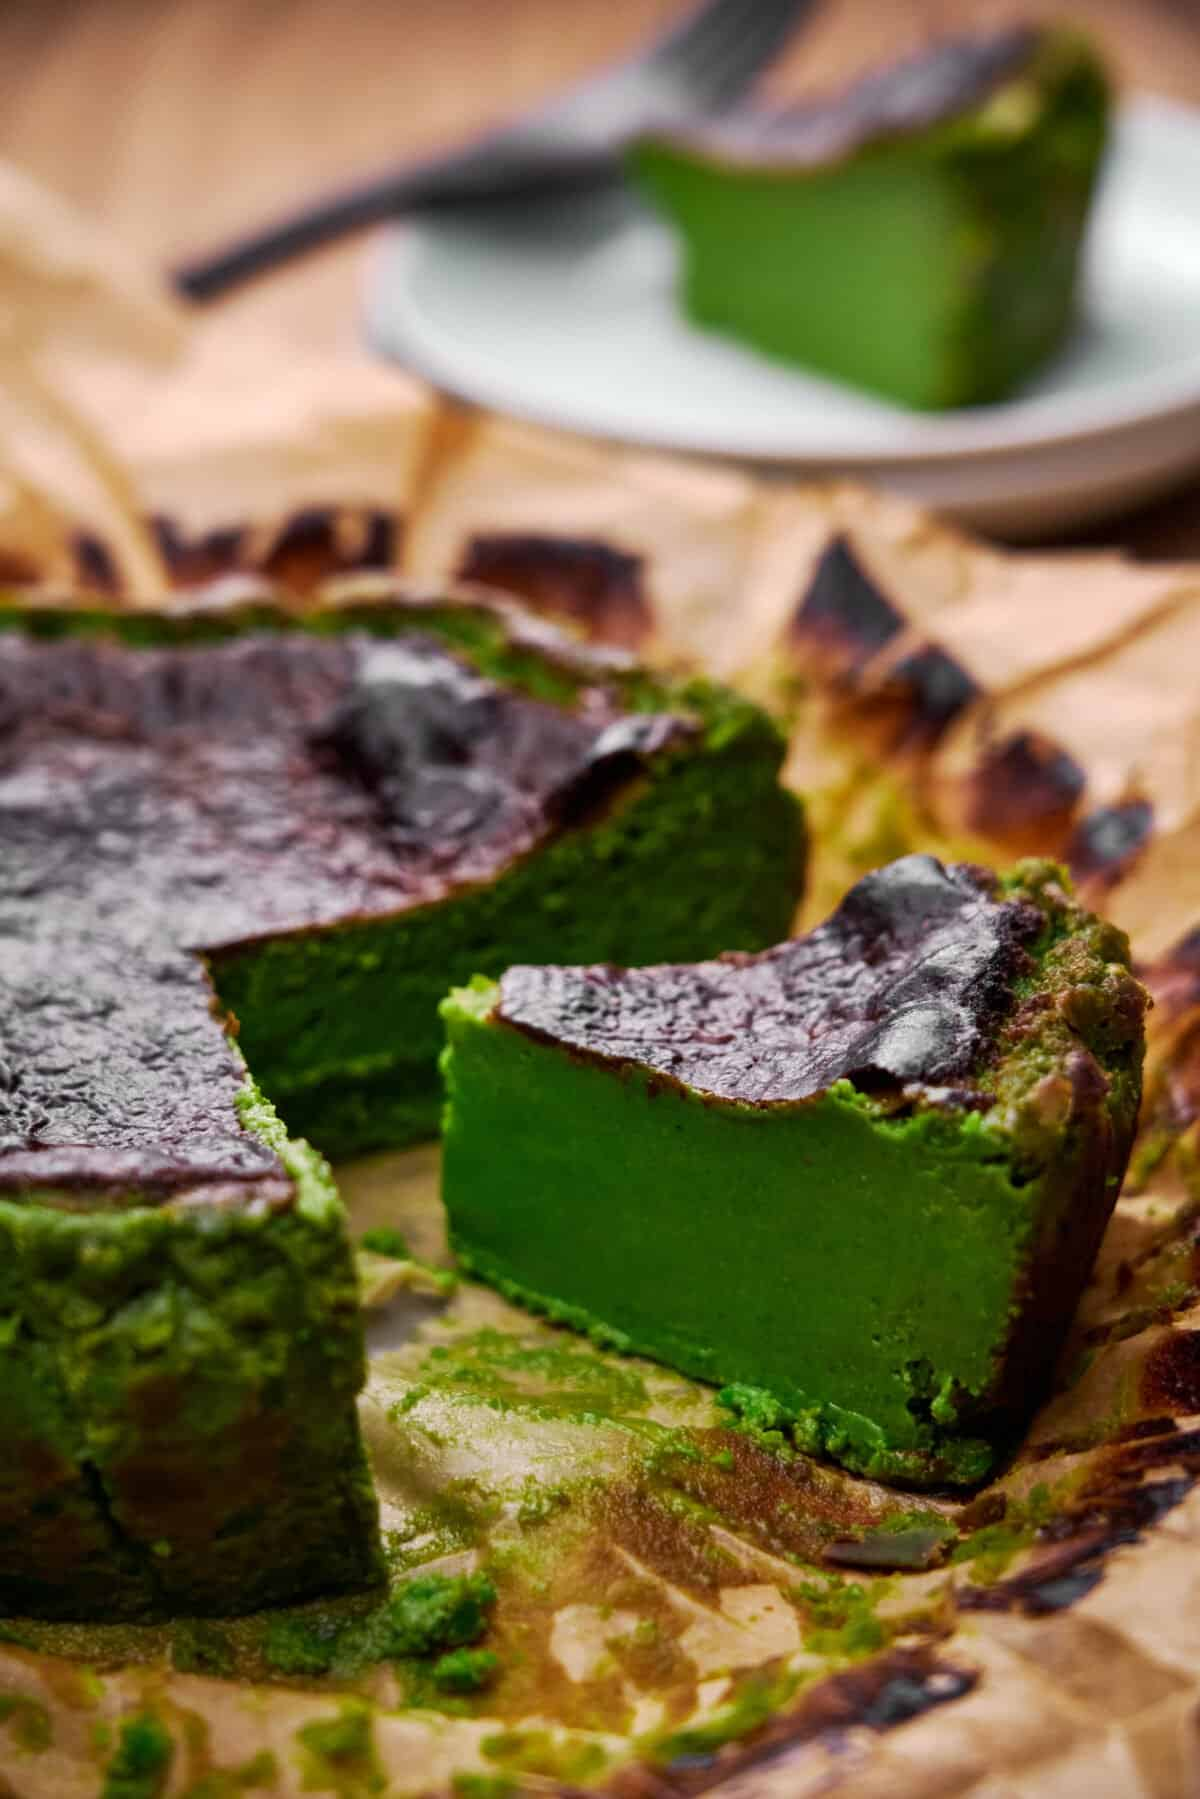 This Matcha Basque Cheesecake is as easy as blending the ingredients and baking them. Silky smooth inside and caramelized on the outside, the matcha powder gives it a vibrant green hue and green tea flavor.